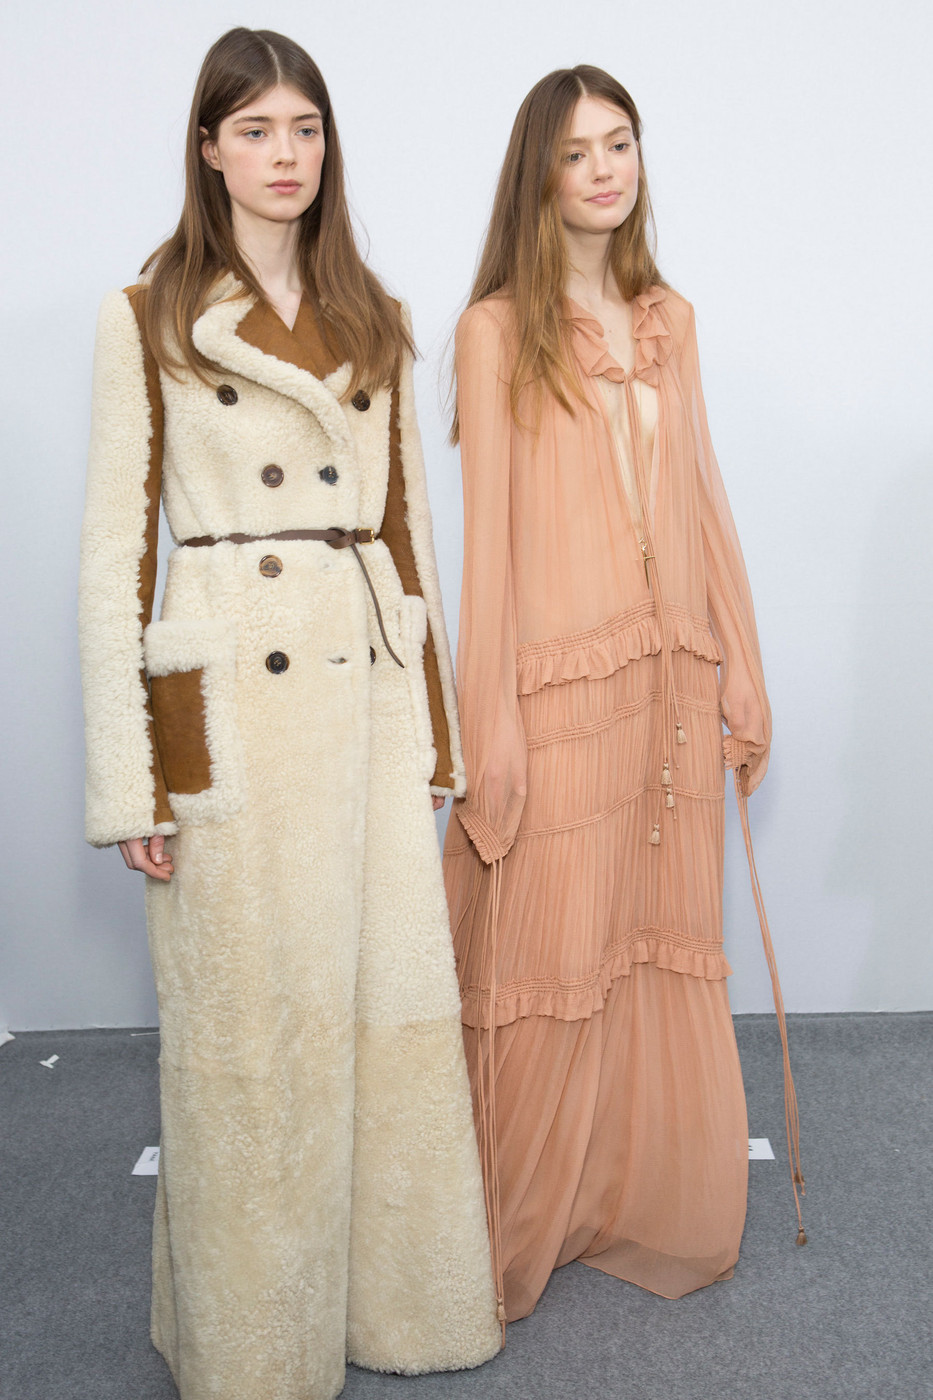 Chloe+Fall+2015+Backstage+3-HH7x_Yysvx.jpg